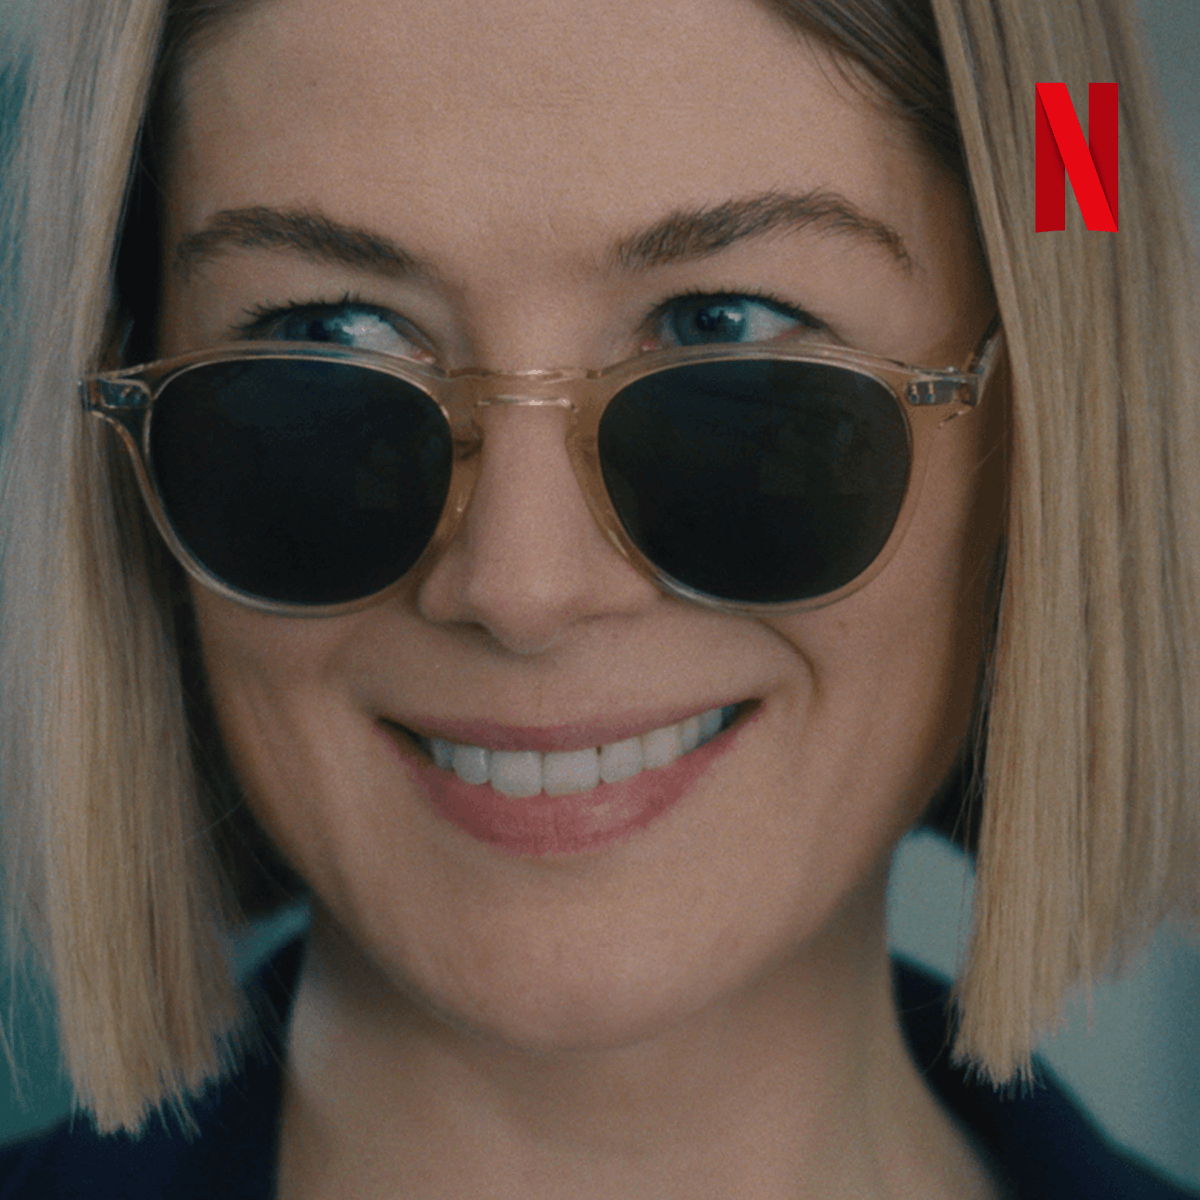 Gays, grifters, and gay grifters: meet Marla Grayson.  Rosamund Pike, Peter Dinklage, Eiza González, Chris Messina, Isiah Whitlock Jr., and Dianne Wiest star in the twisted satire I CARE A LOT, coming to Netflix Feb 19.